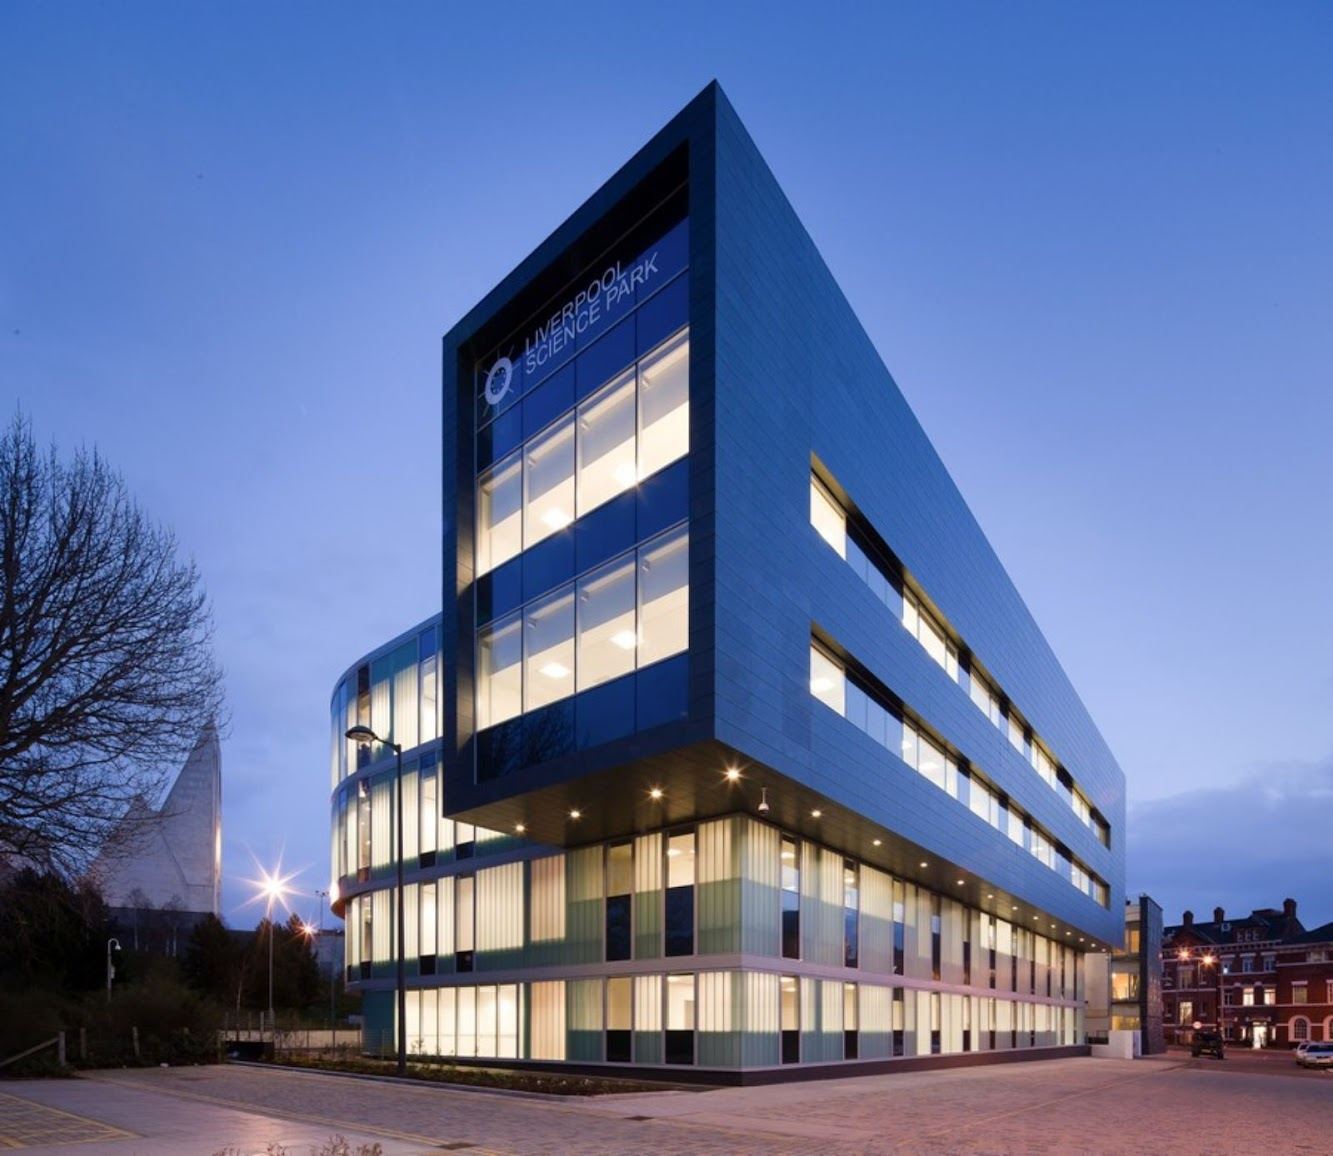 Reserch Centre: INNOVATION CENTRE 3 by RYDER ARCHITECTURE